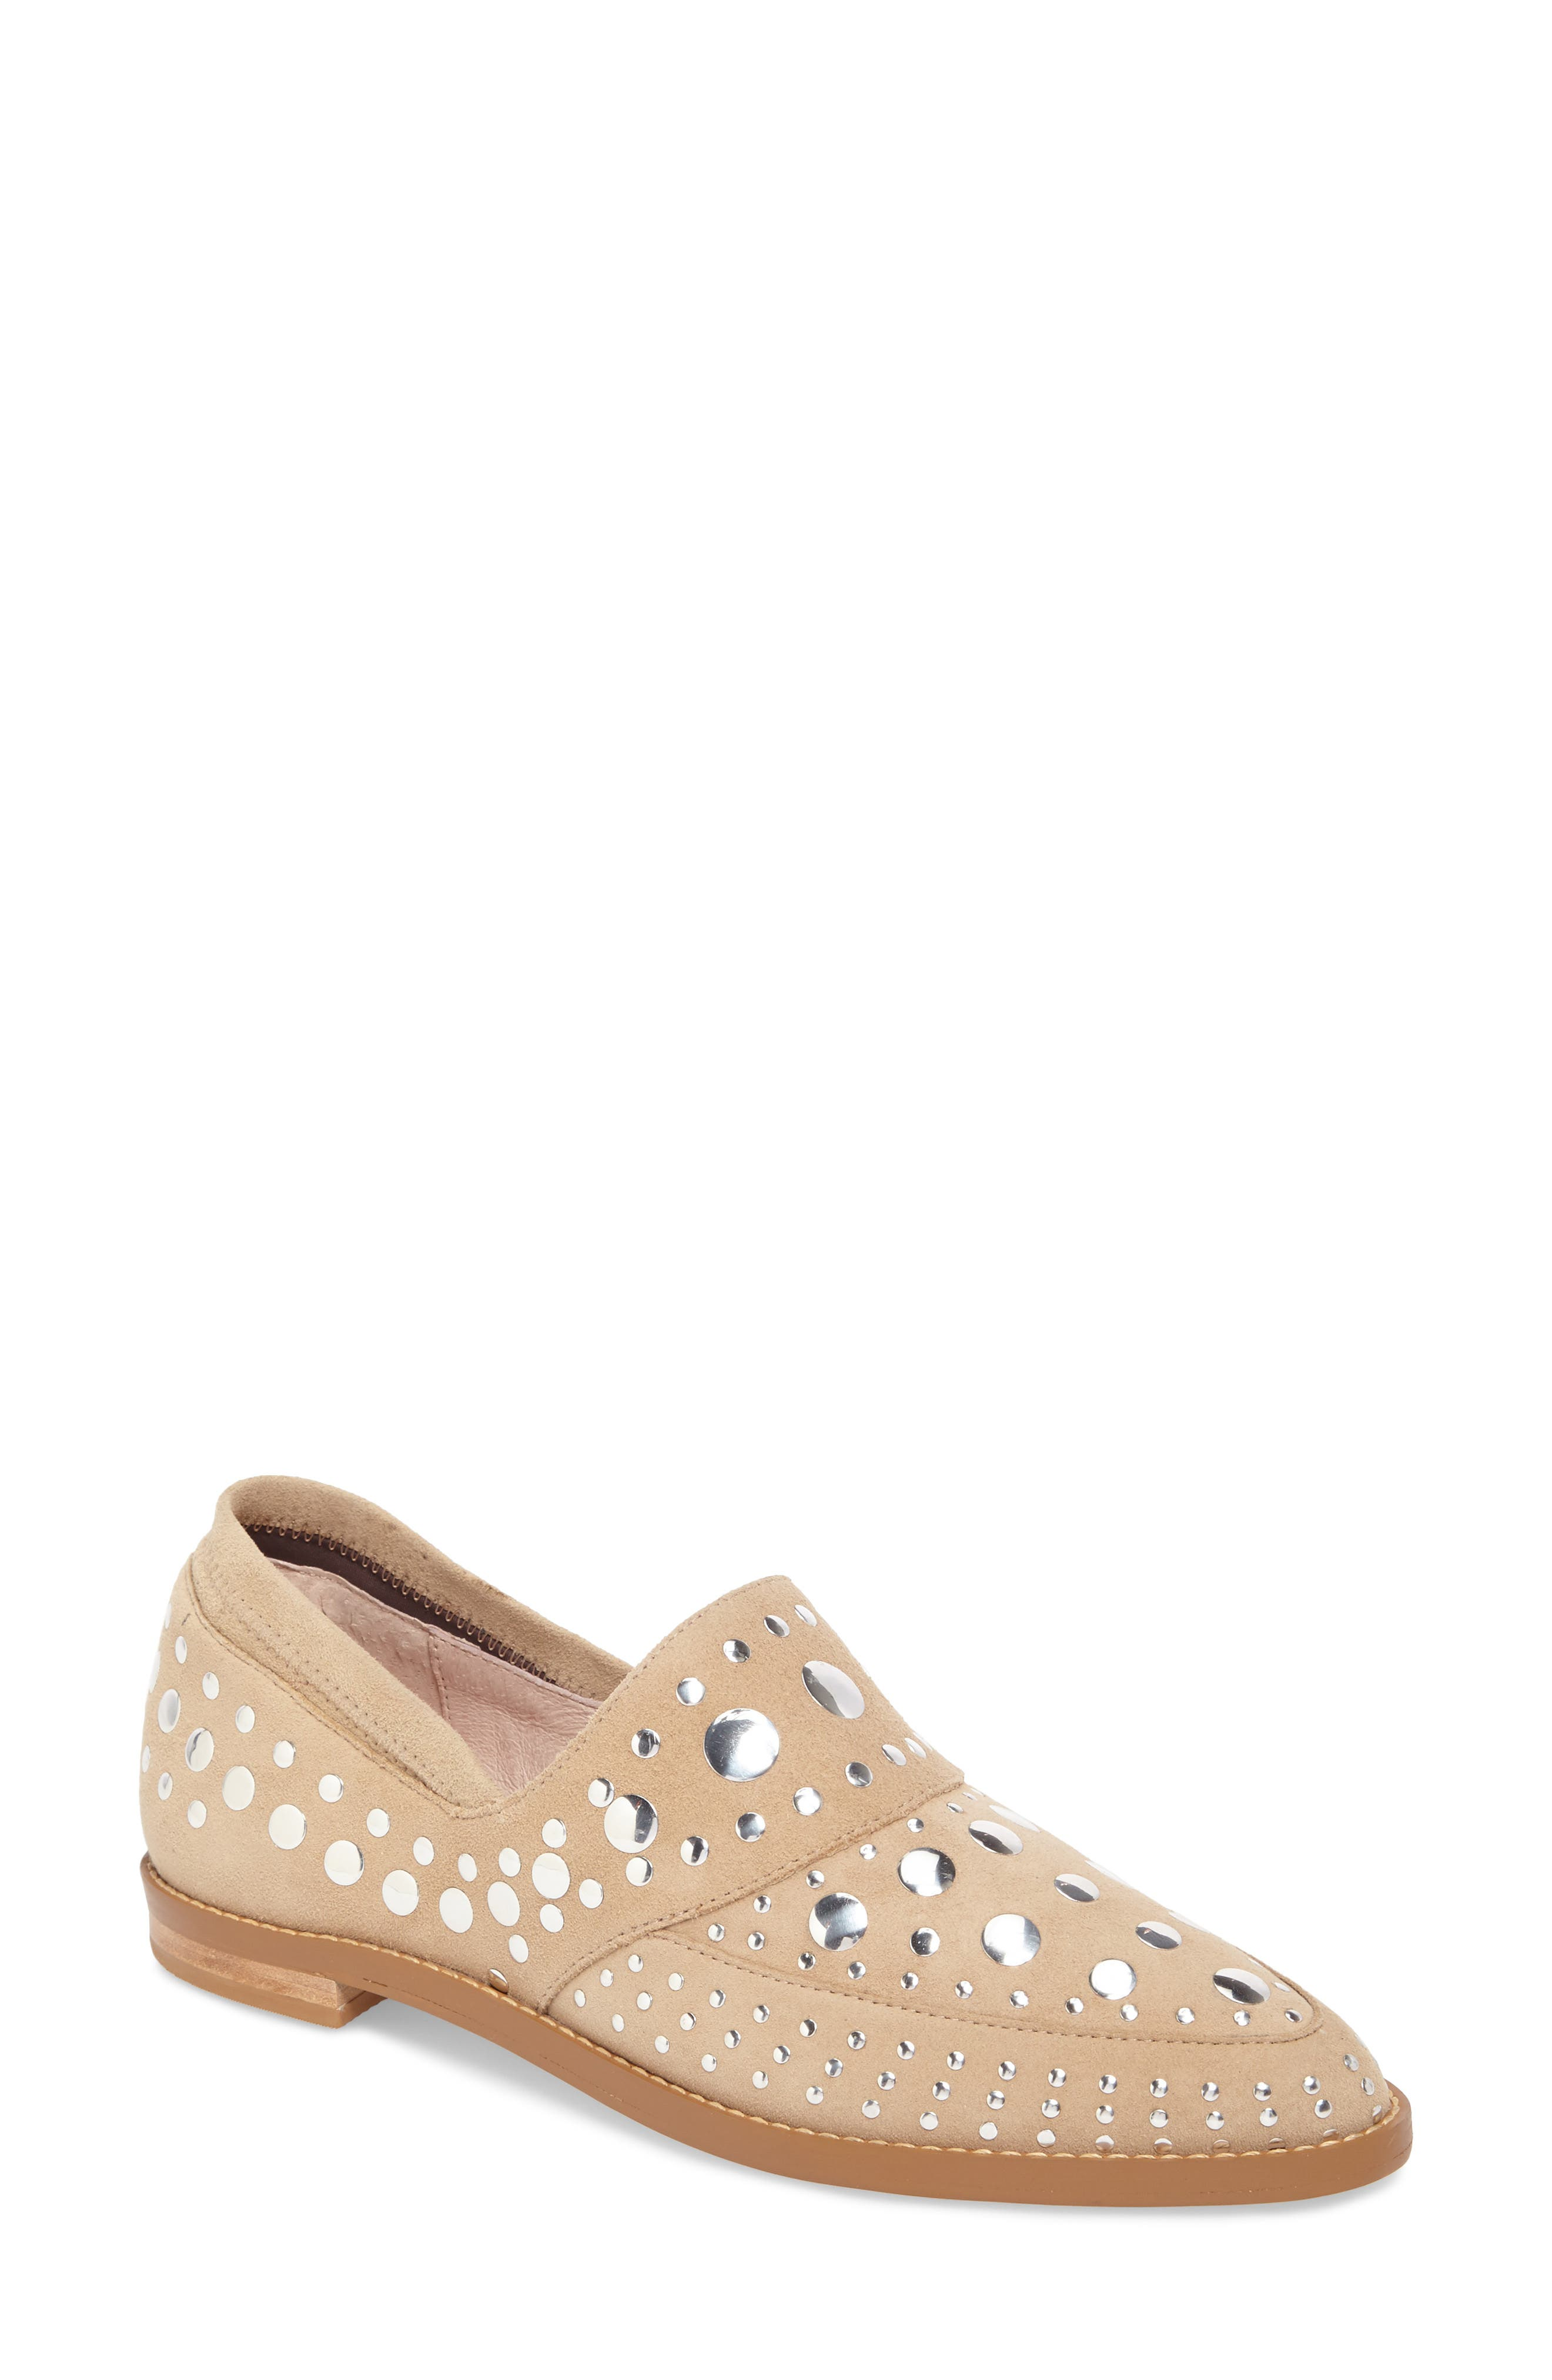 Ping Studded Loafer,                             Main thumbnail 3, color,